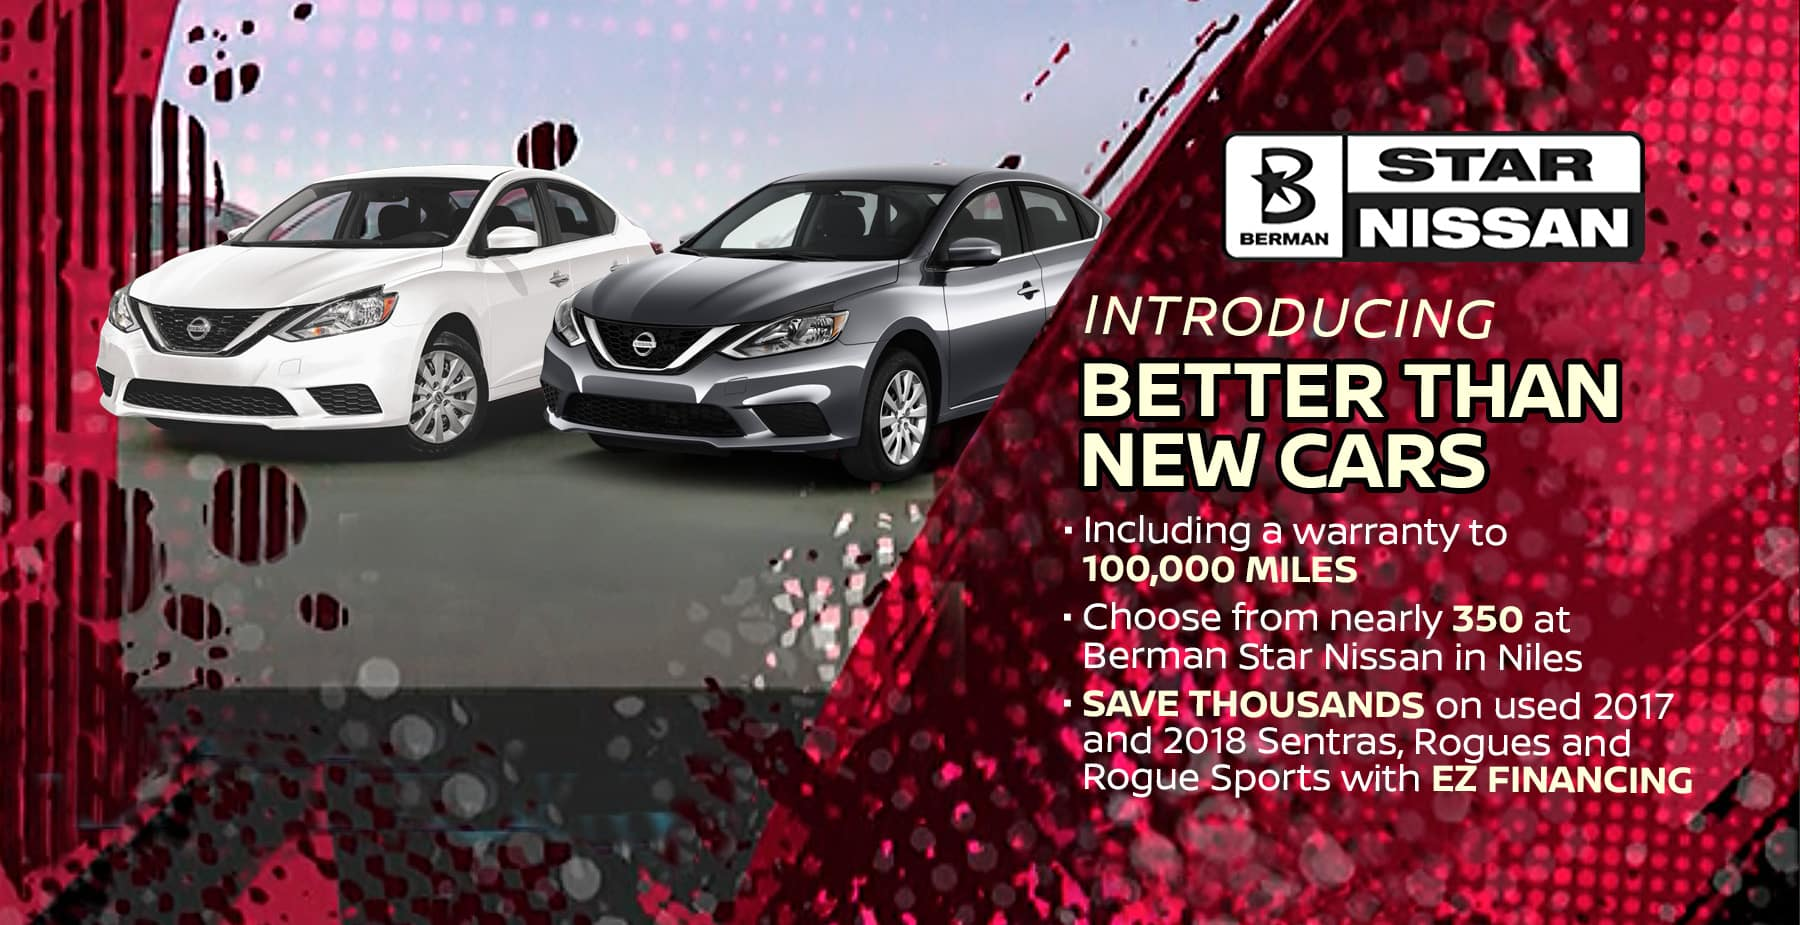 Introducing Better Than New Cars at Star Nissan!